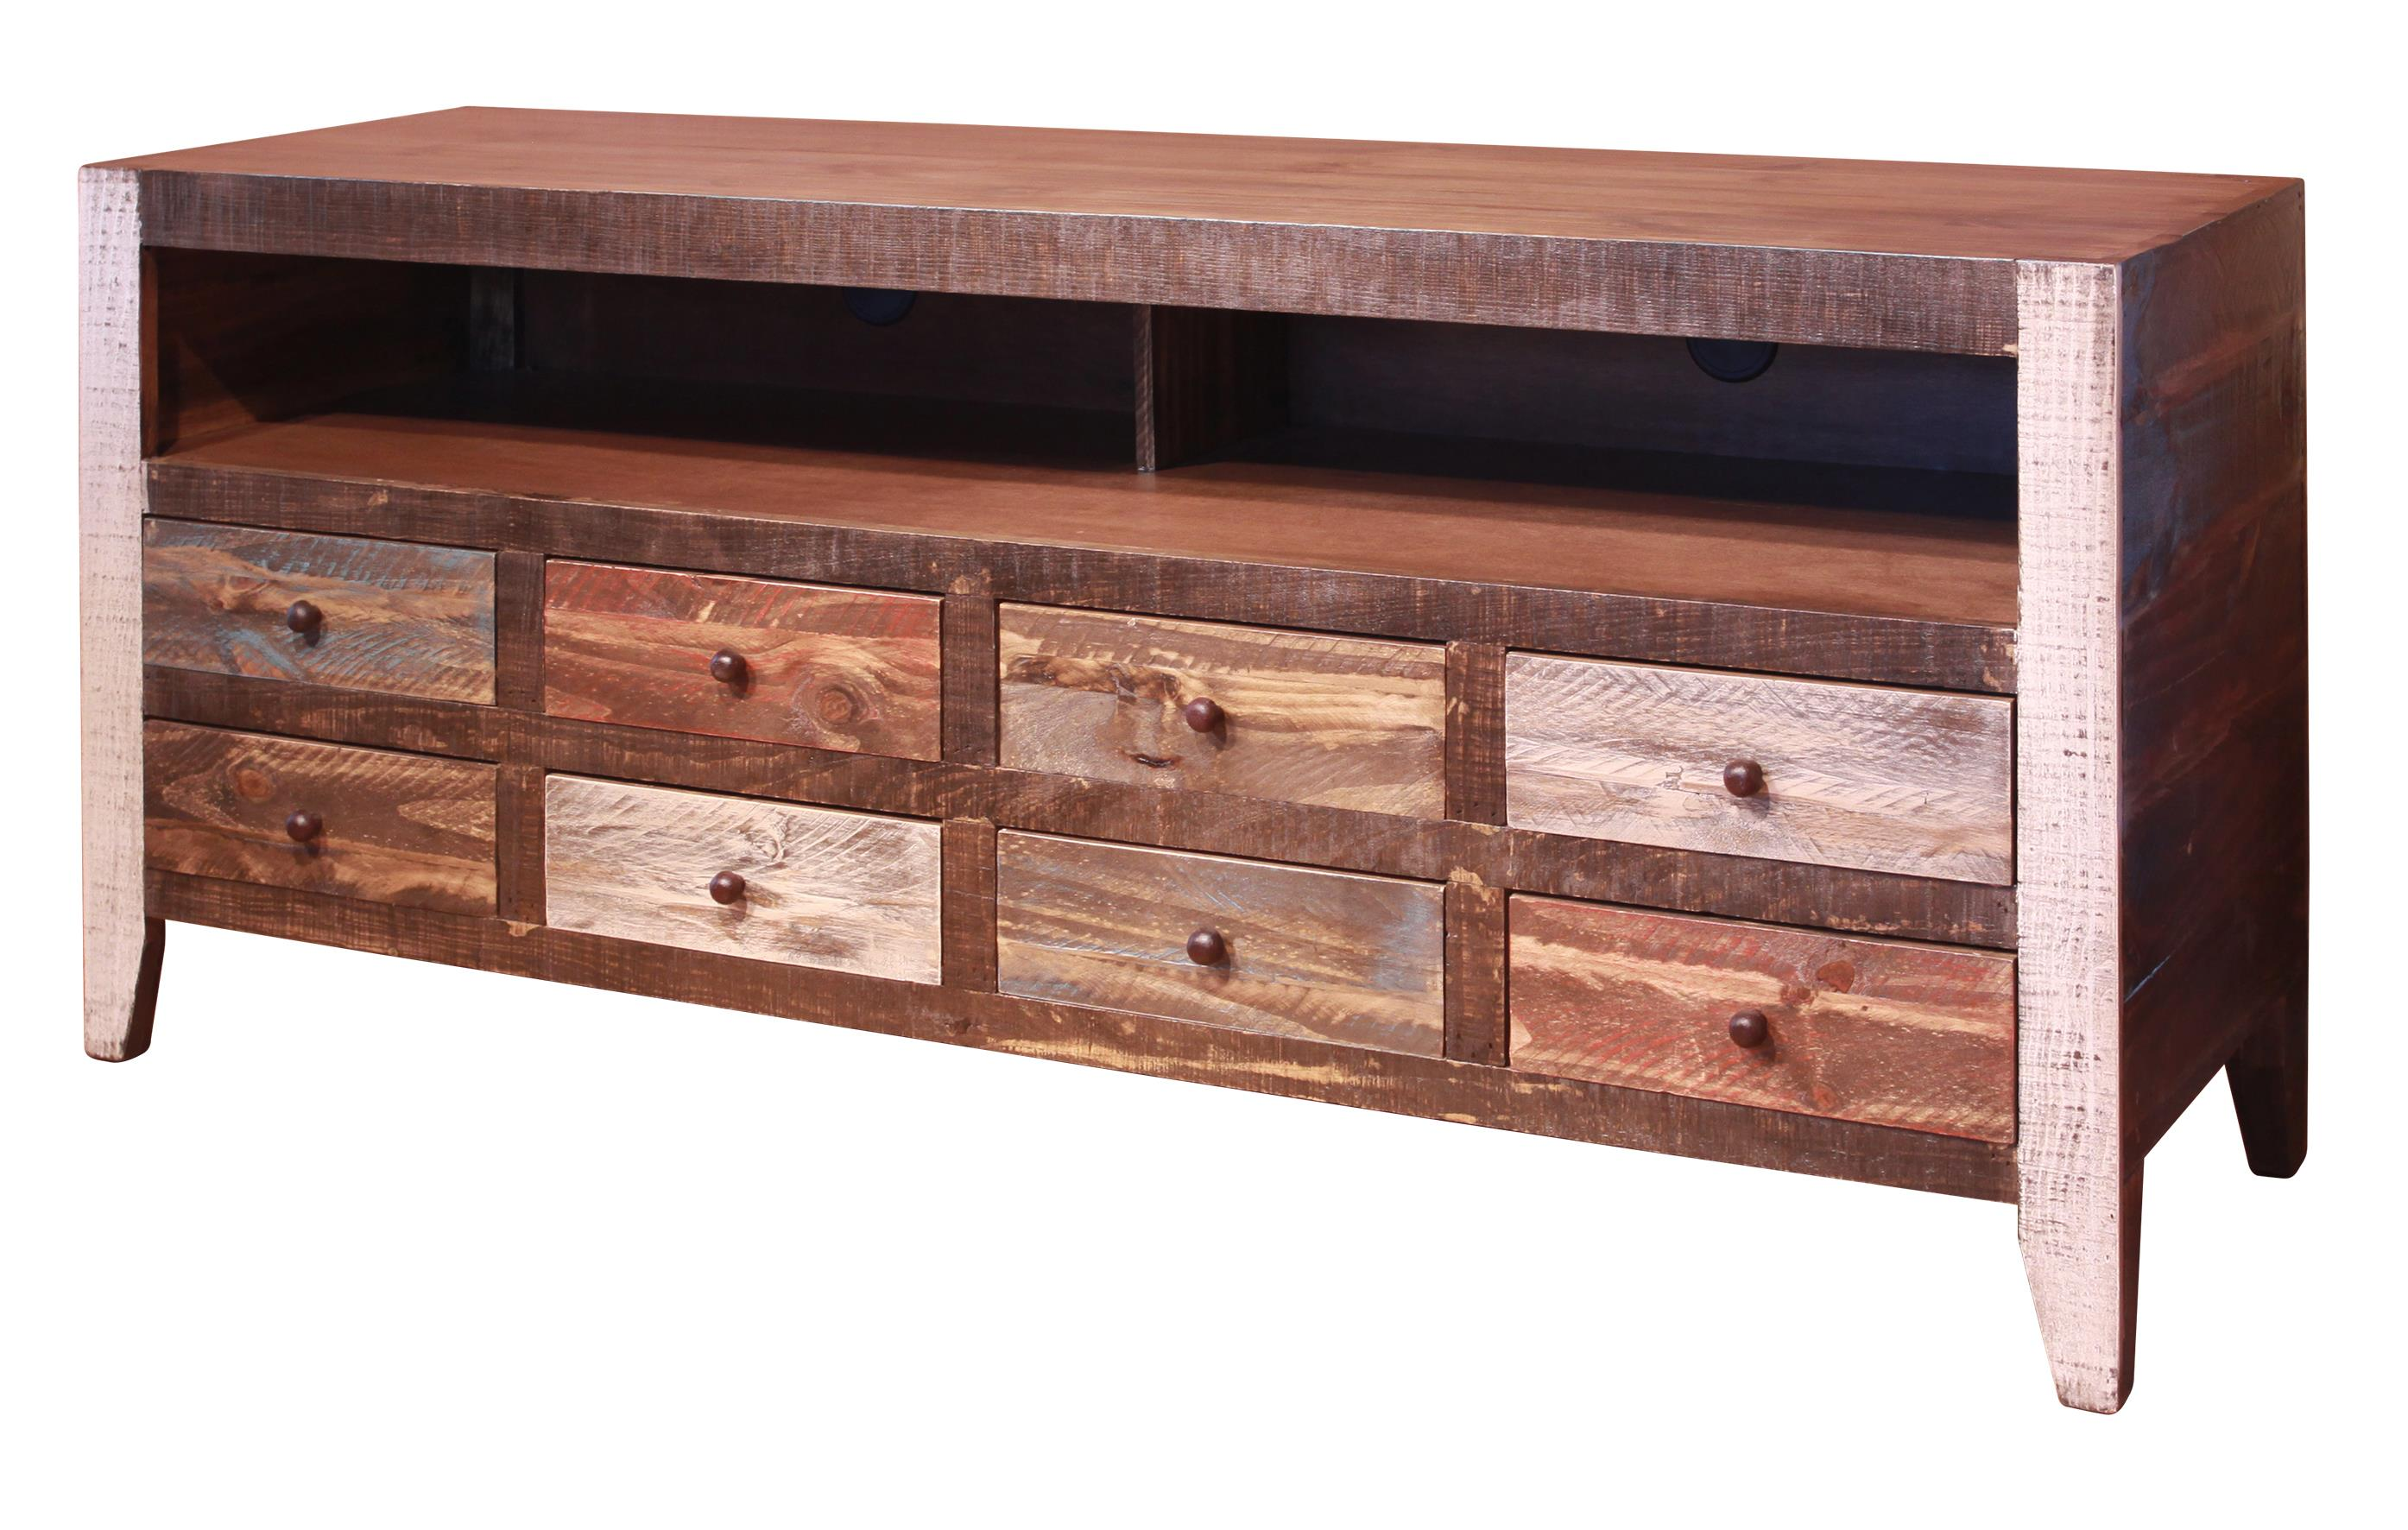 900 Antique 8 Drawer TV Stand by International Furniture Direct at Sparks HomeStore